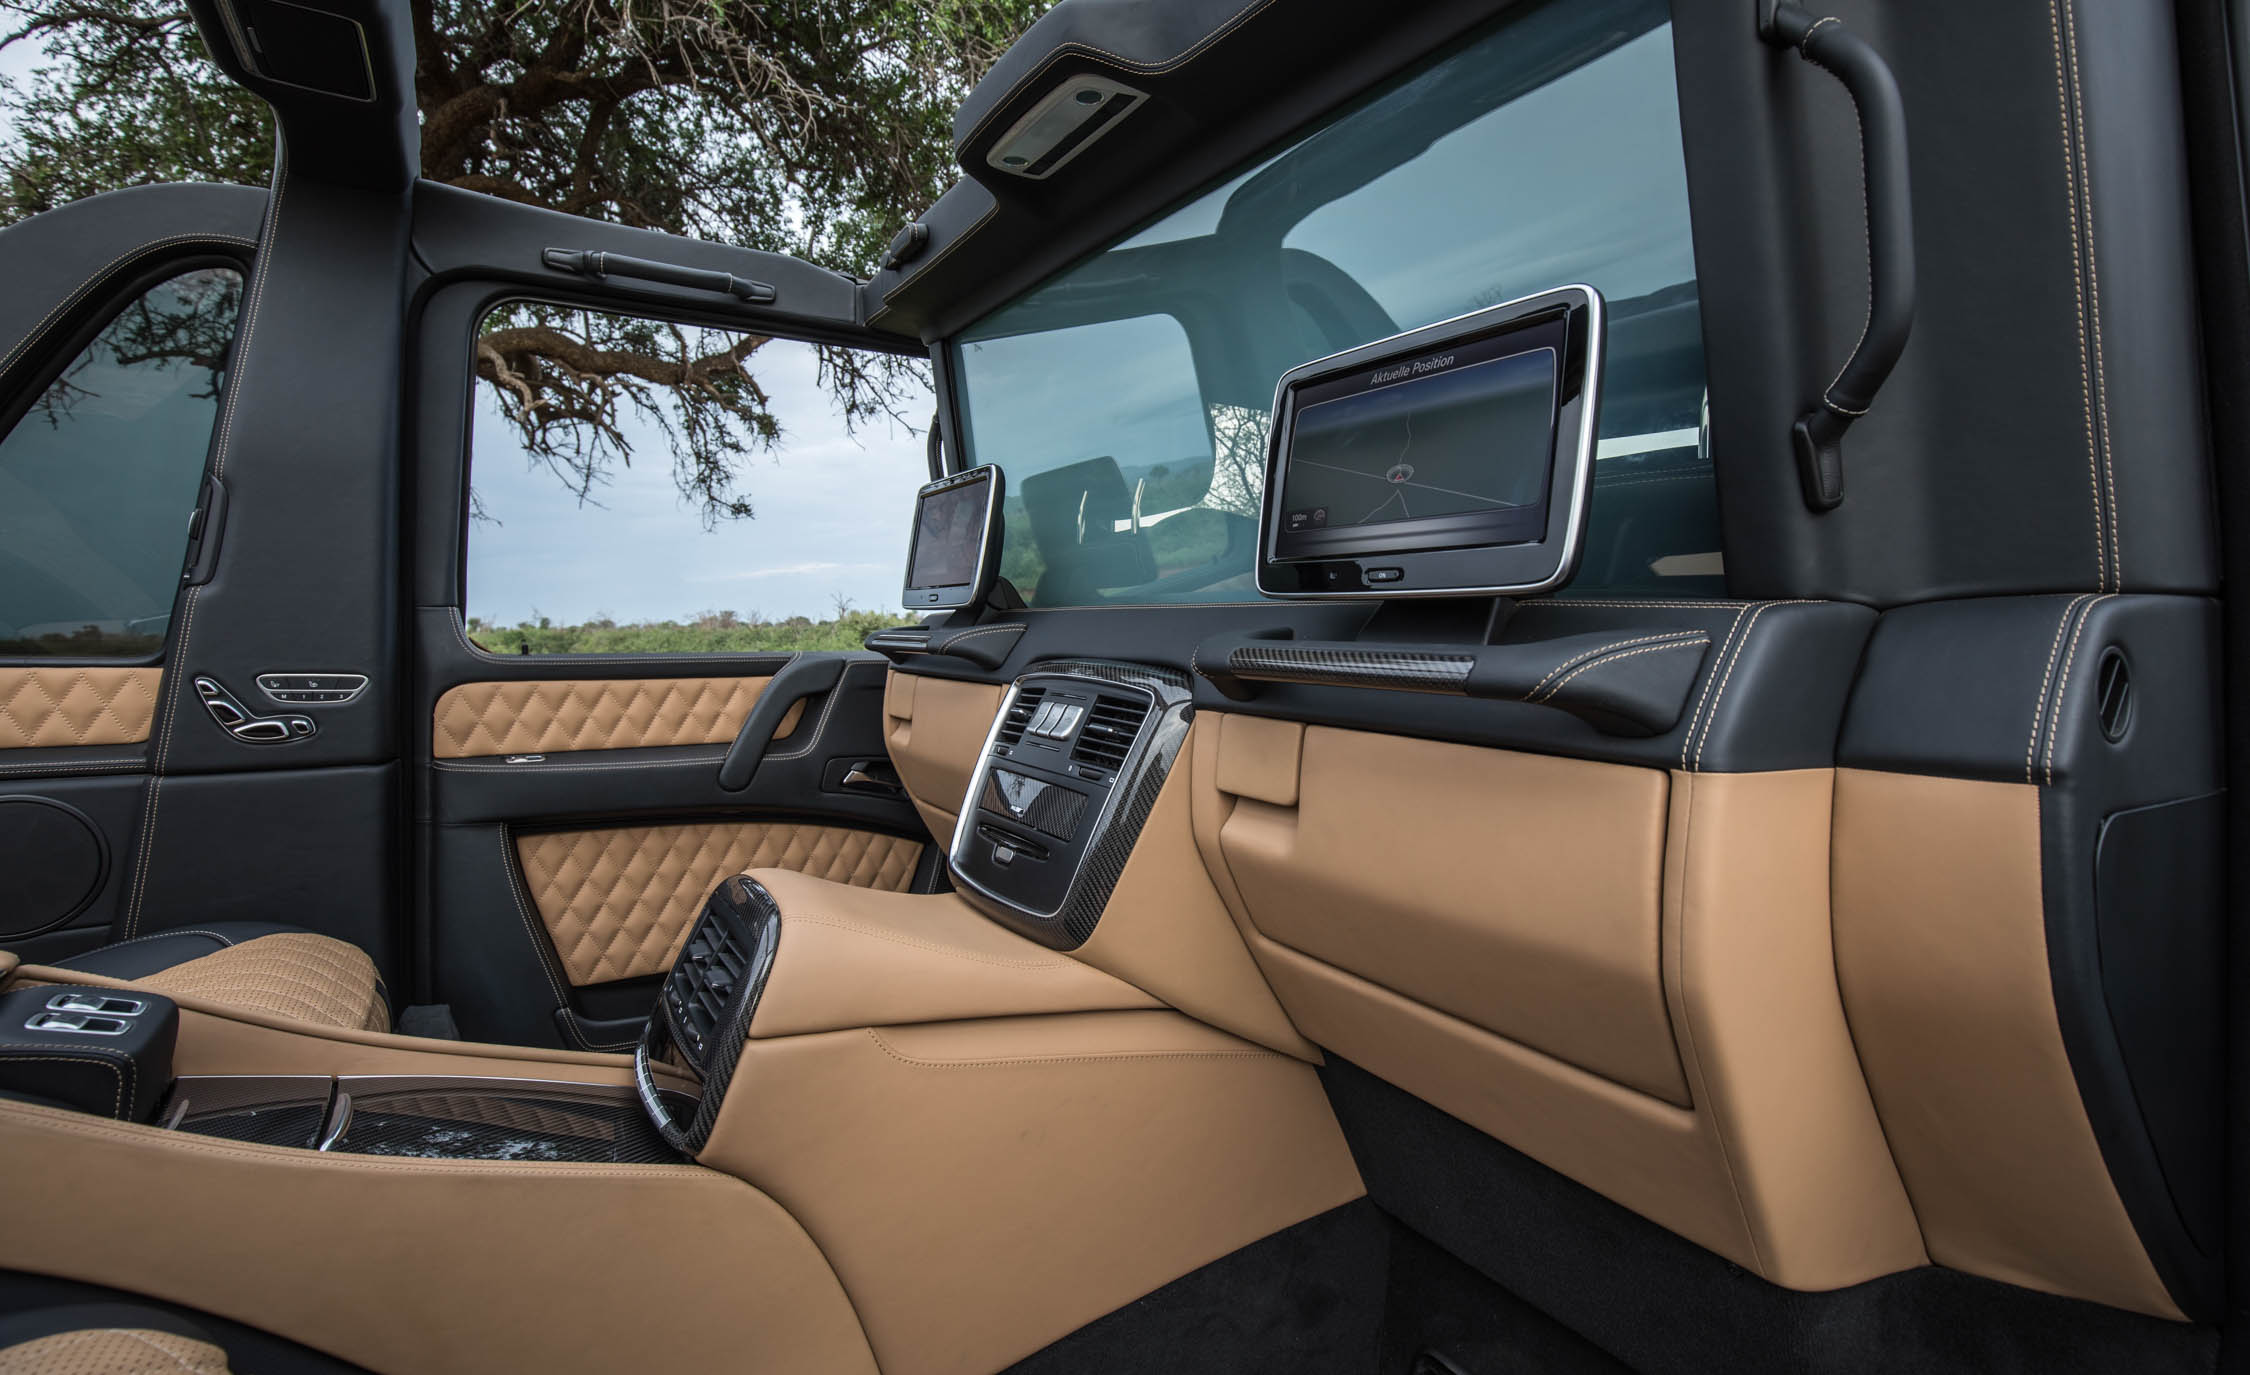 2018 Mercedes Maybach G650 Landaulet Interior Rear Dashboard And Headunit Multimedia Screen (Photo 37 of 52)